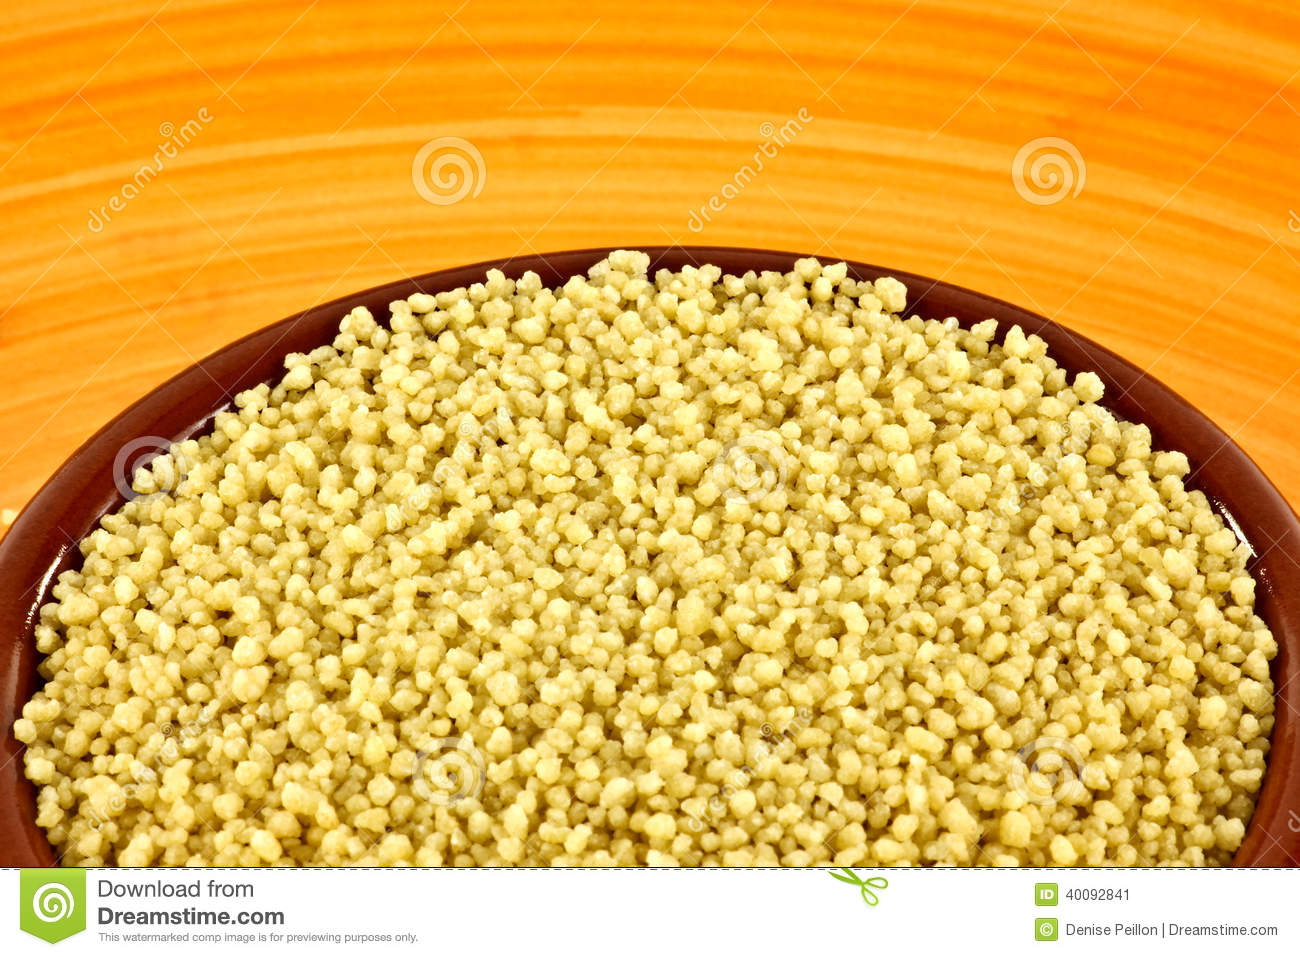 Uncooked Couscous Stock Photo - Image: 40092841